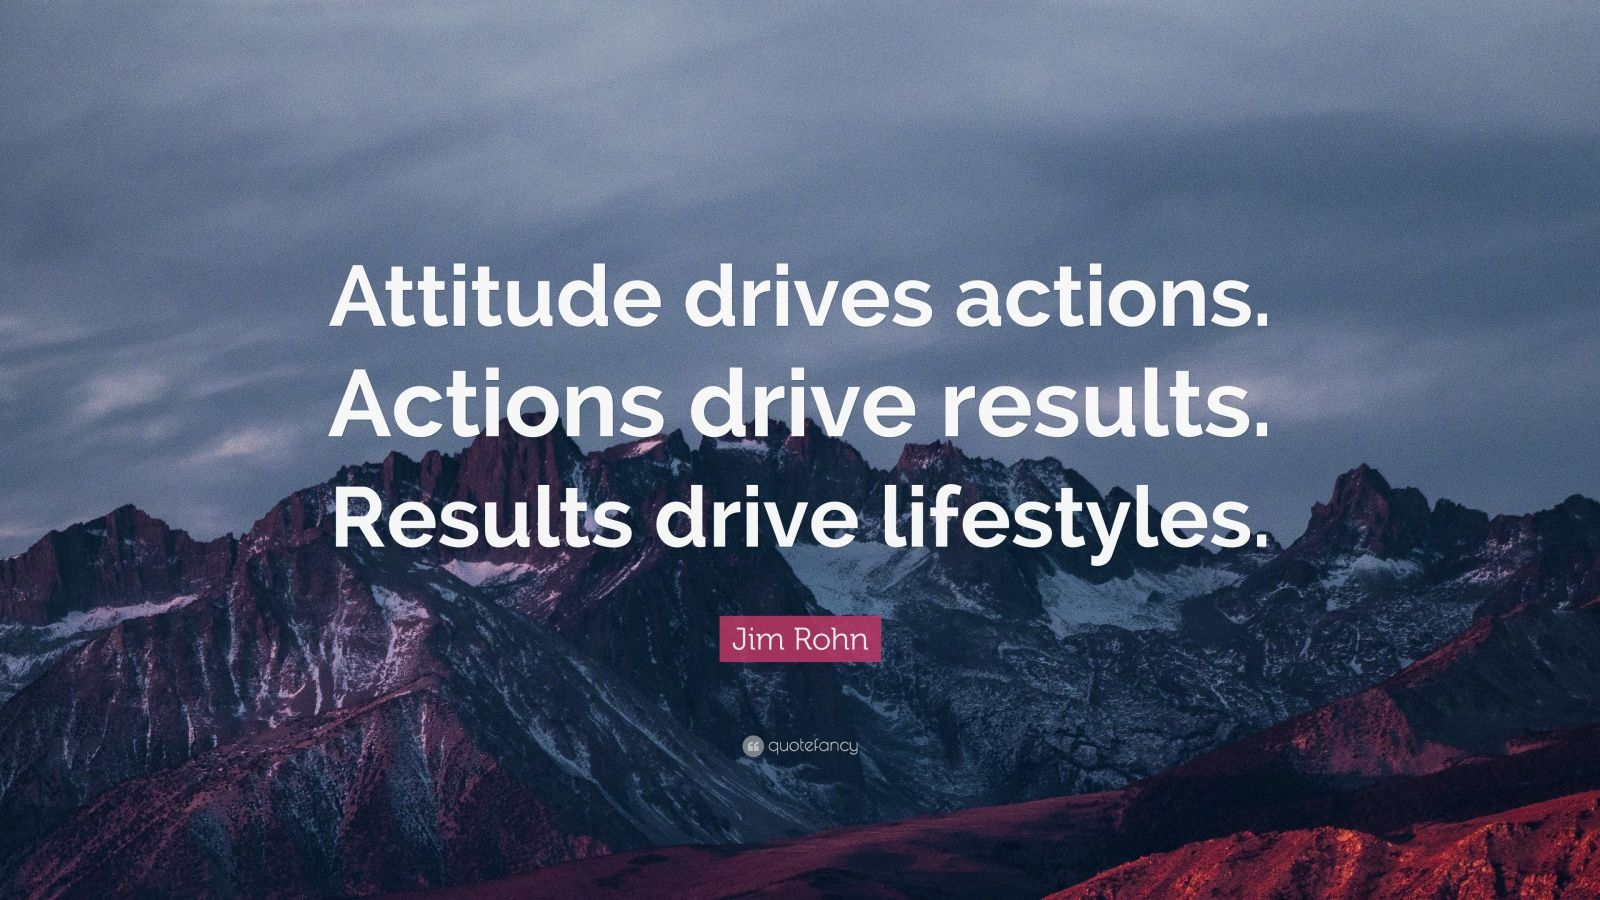 Quote Wallpaper Drive Jim Rohn Quote Attitude Drives Actions Actions Drive